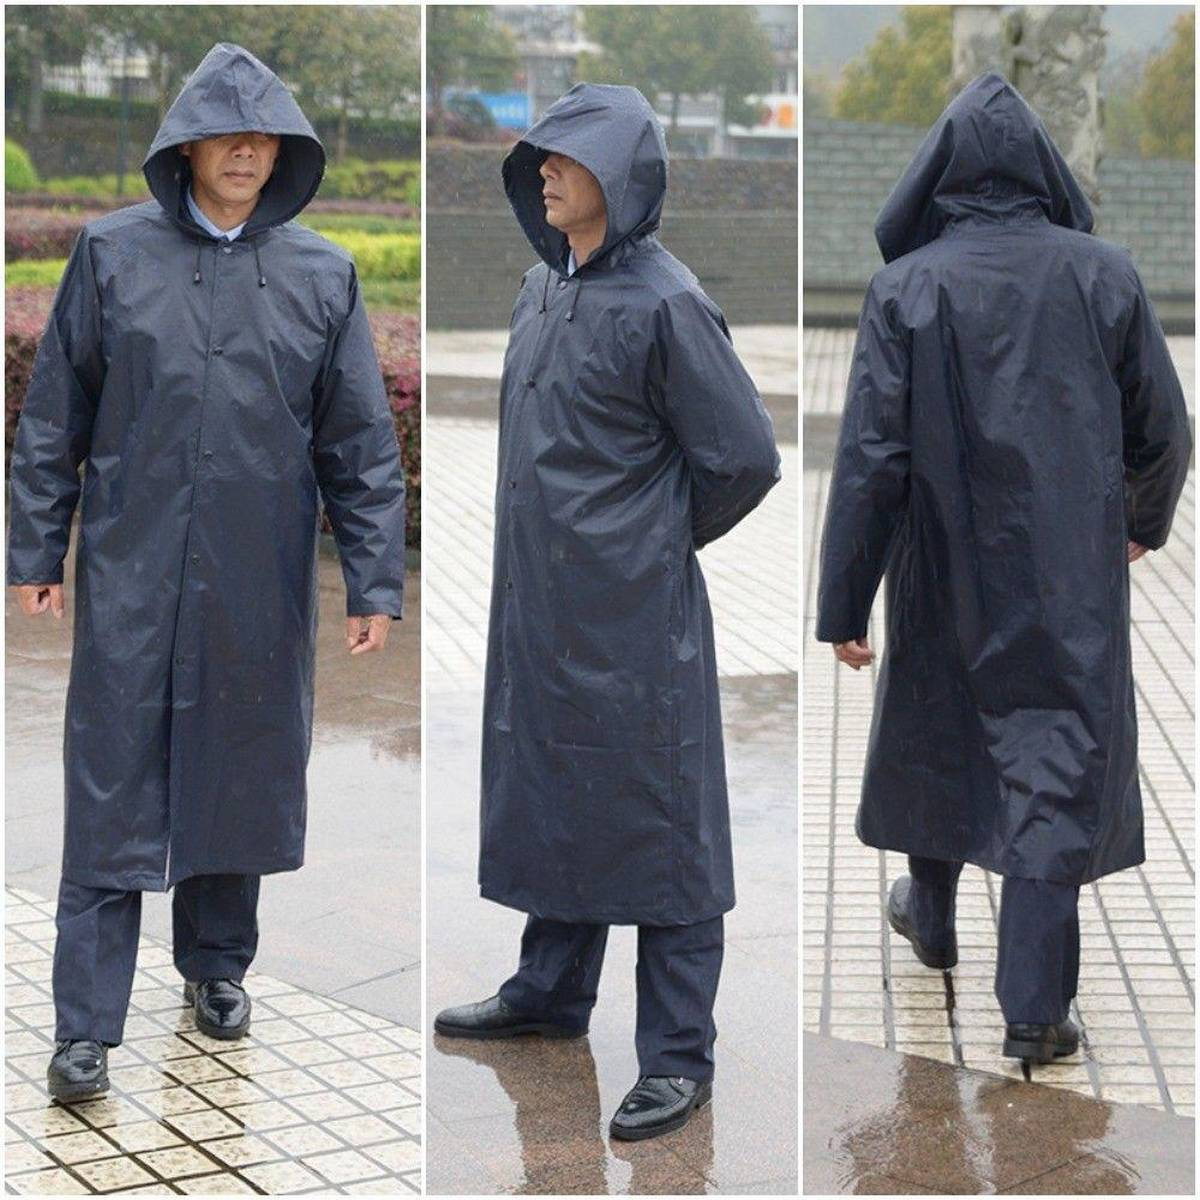 Raincoat Reusable, Adult Raincoat with Hoods and Sleeves, Thicken Clear Ponchos for Men Women Teens,